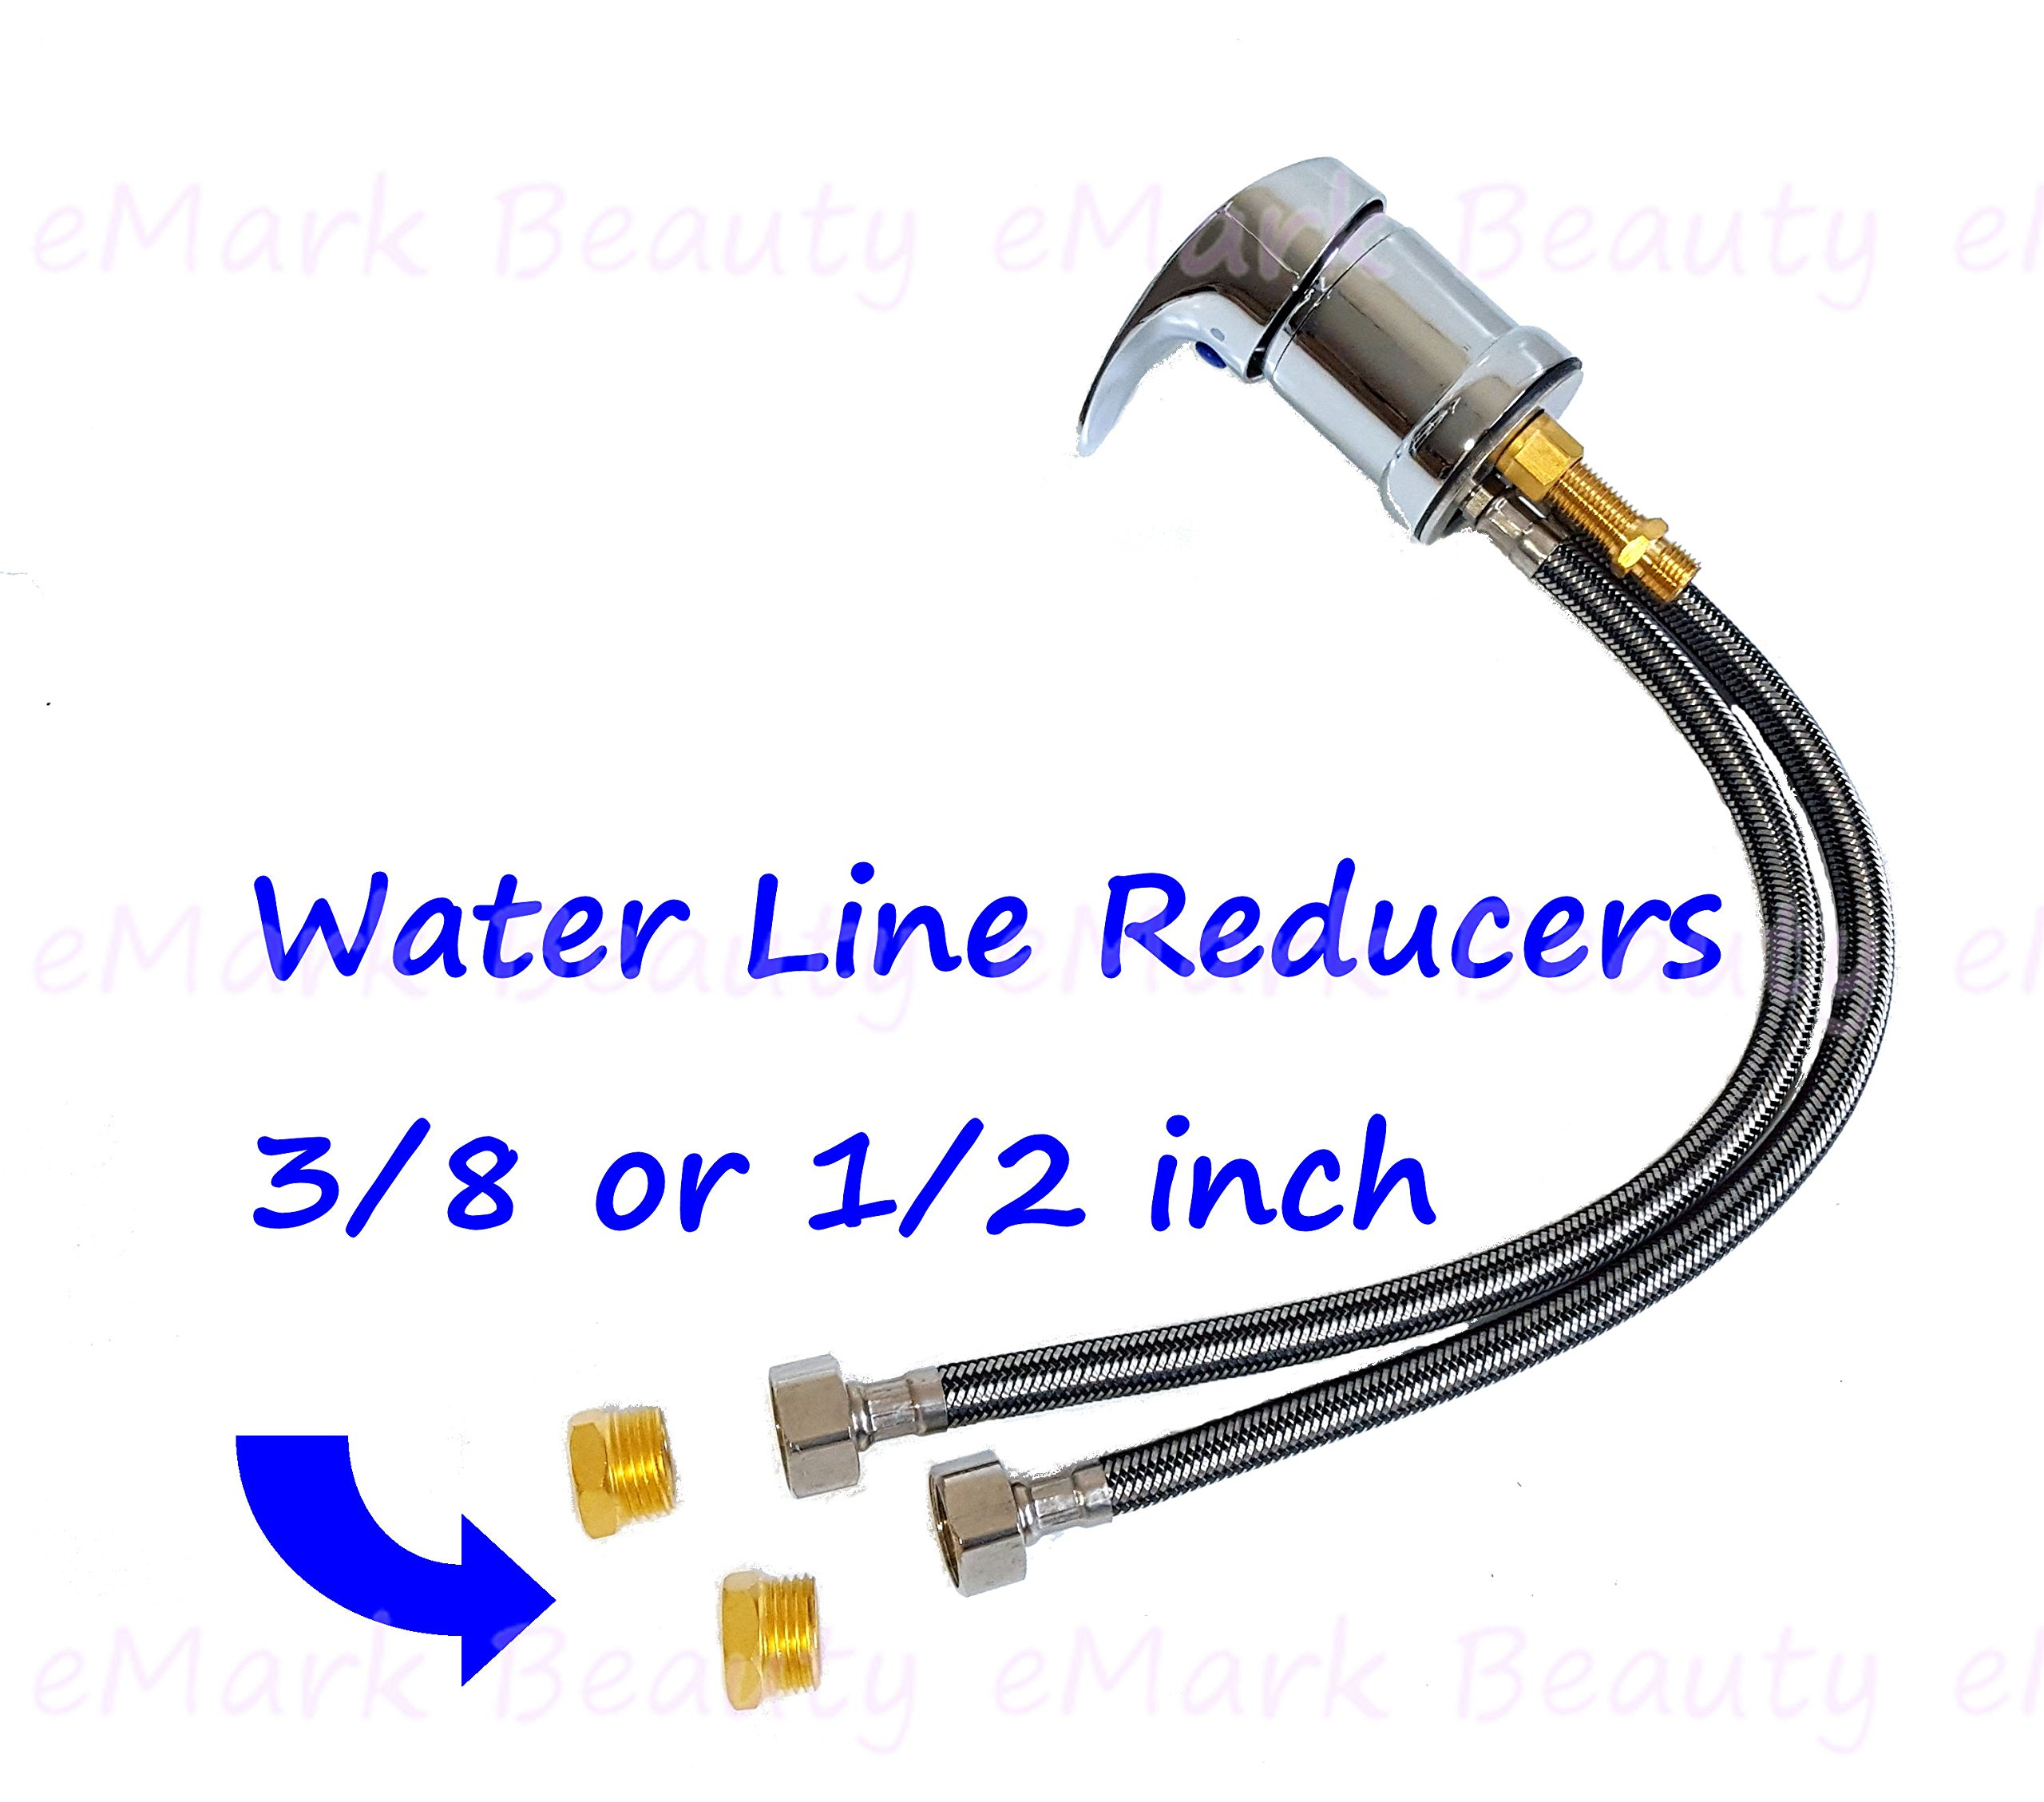 eMark Faucet and Spray Hose for Beauty Salon Shampoo Bowl Parts Kit with Reducers Included - 1164SH by eMark Beauty (Image #1)